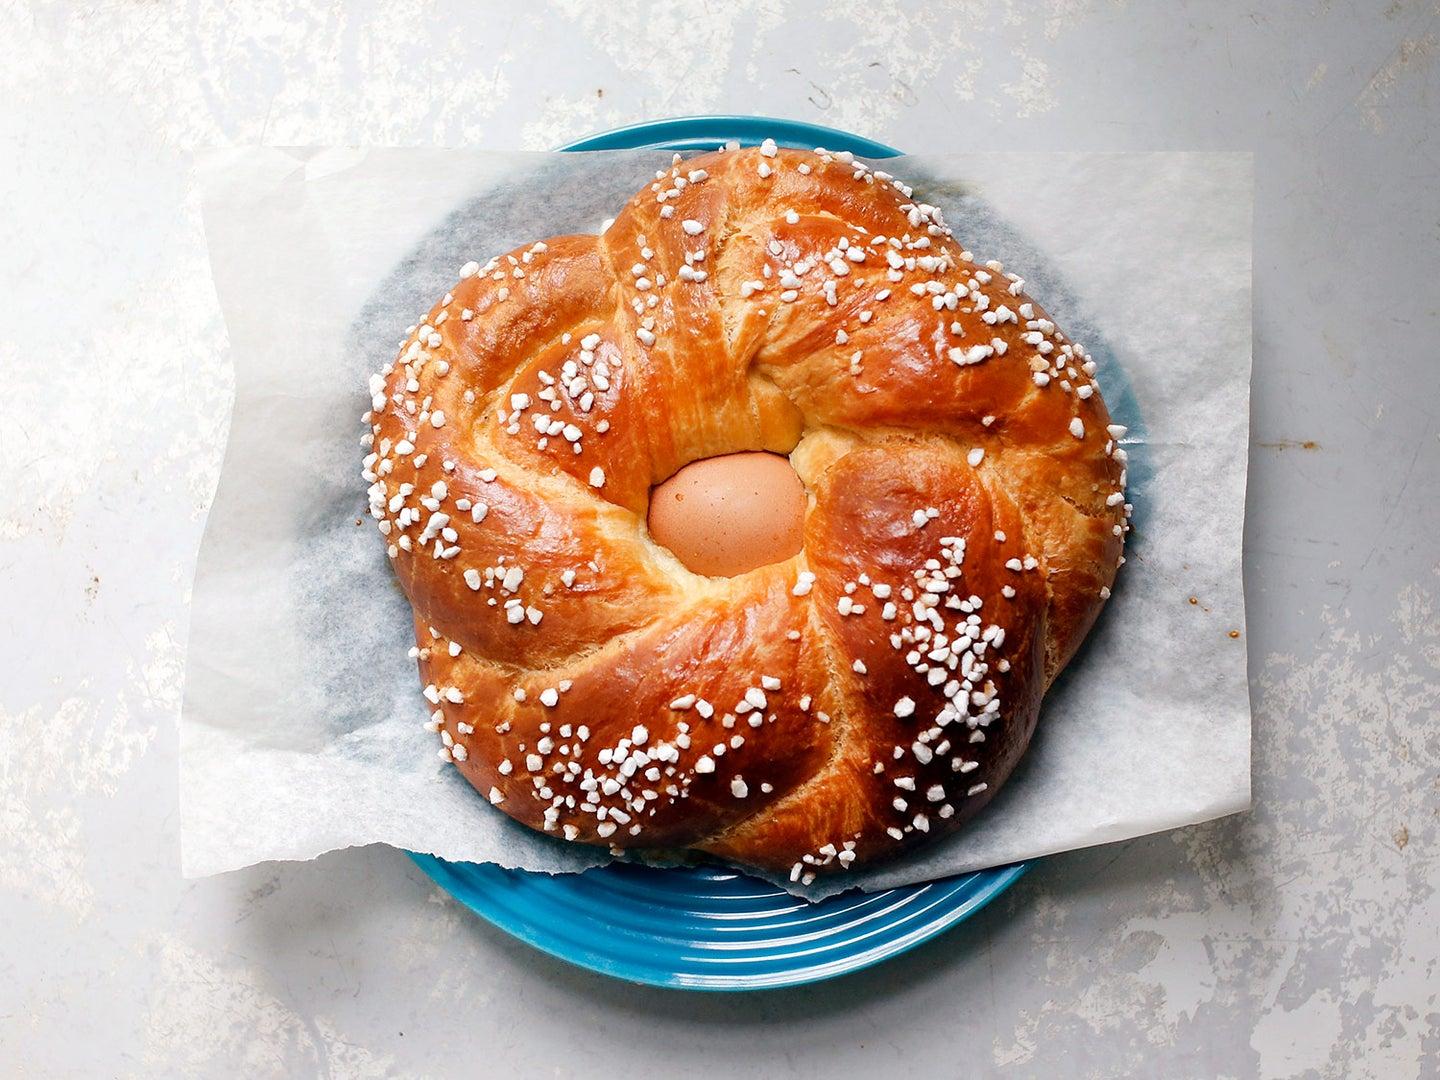 Master Easter Bread with This Step-by-Step Guide